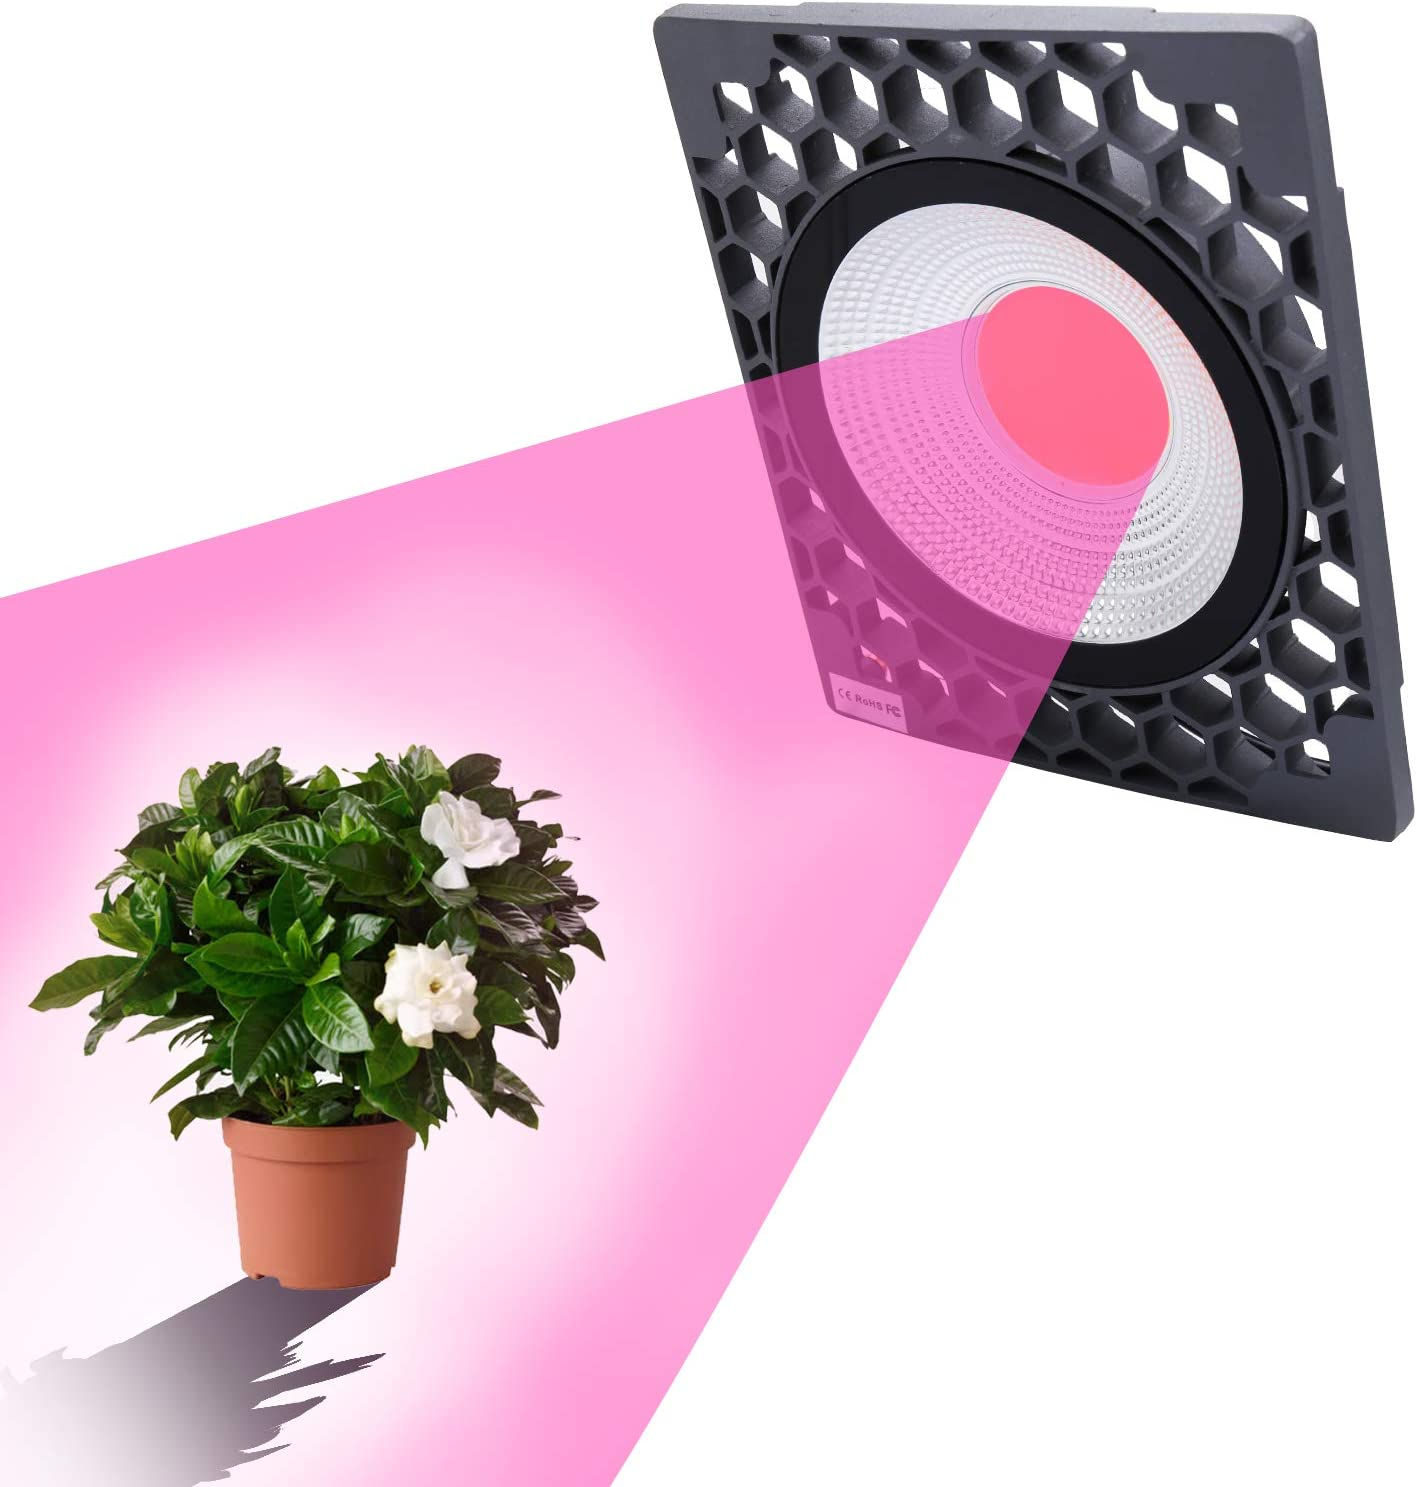 100W LED Grow Light Strip Hydroponic Full Spectrum Plant Lamp 4 Levels Dimmable